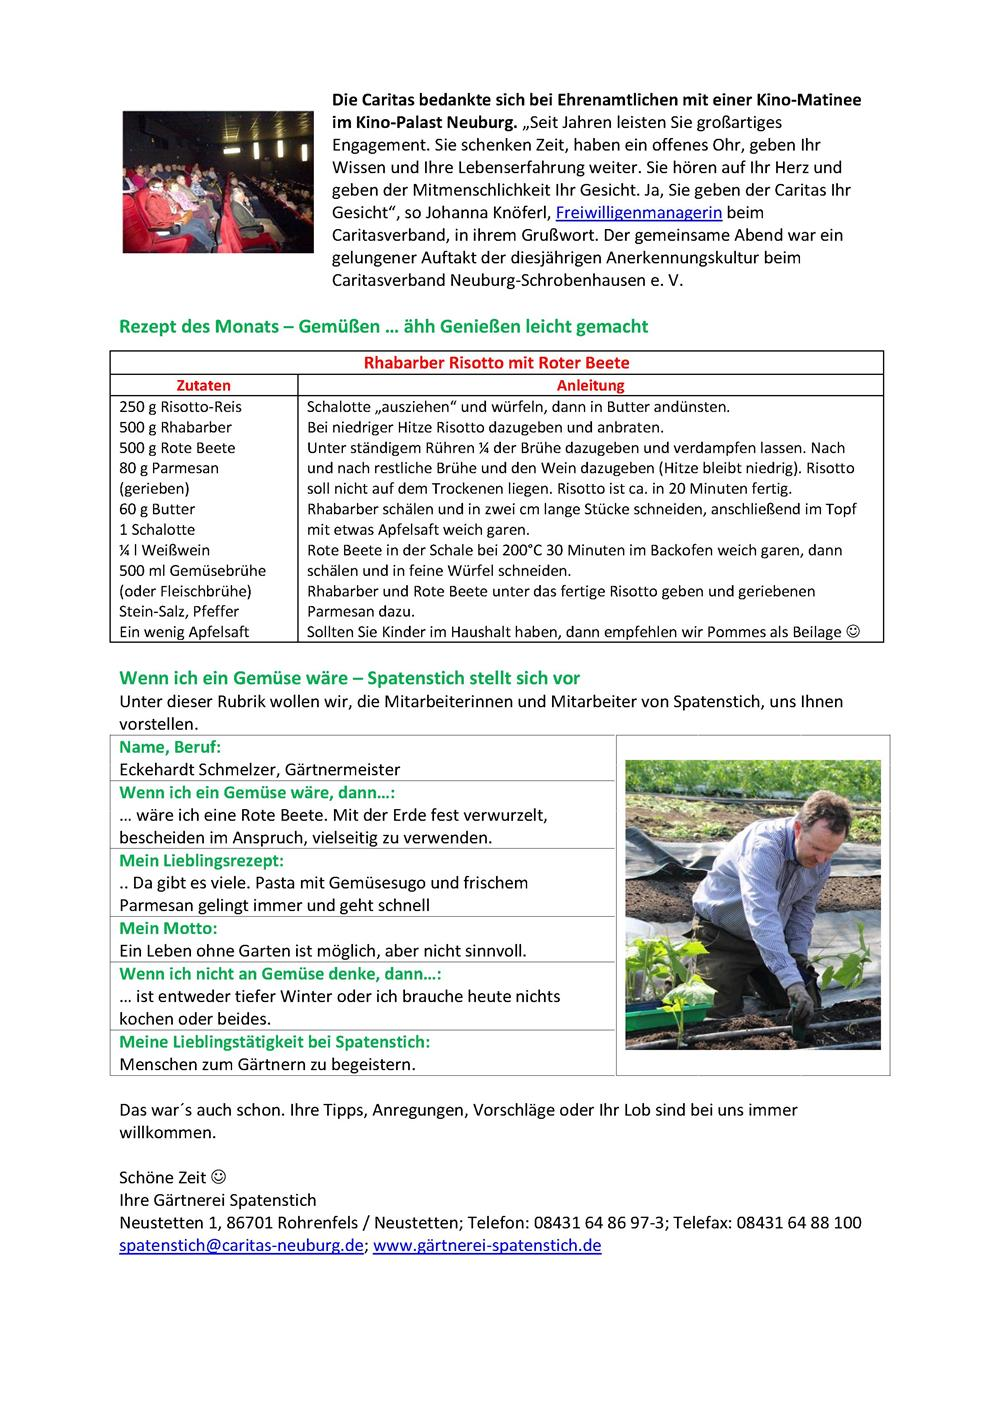 Newsletter08-18 Gärtnerei SpatenstichII